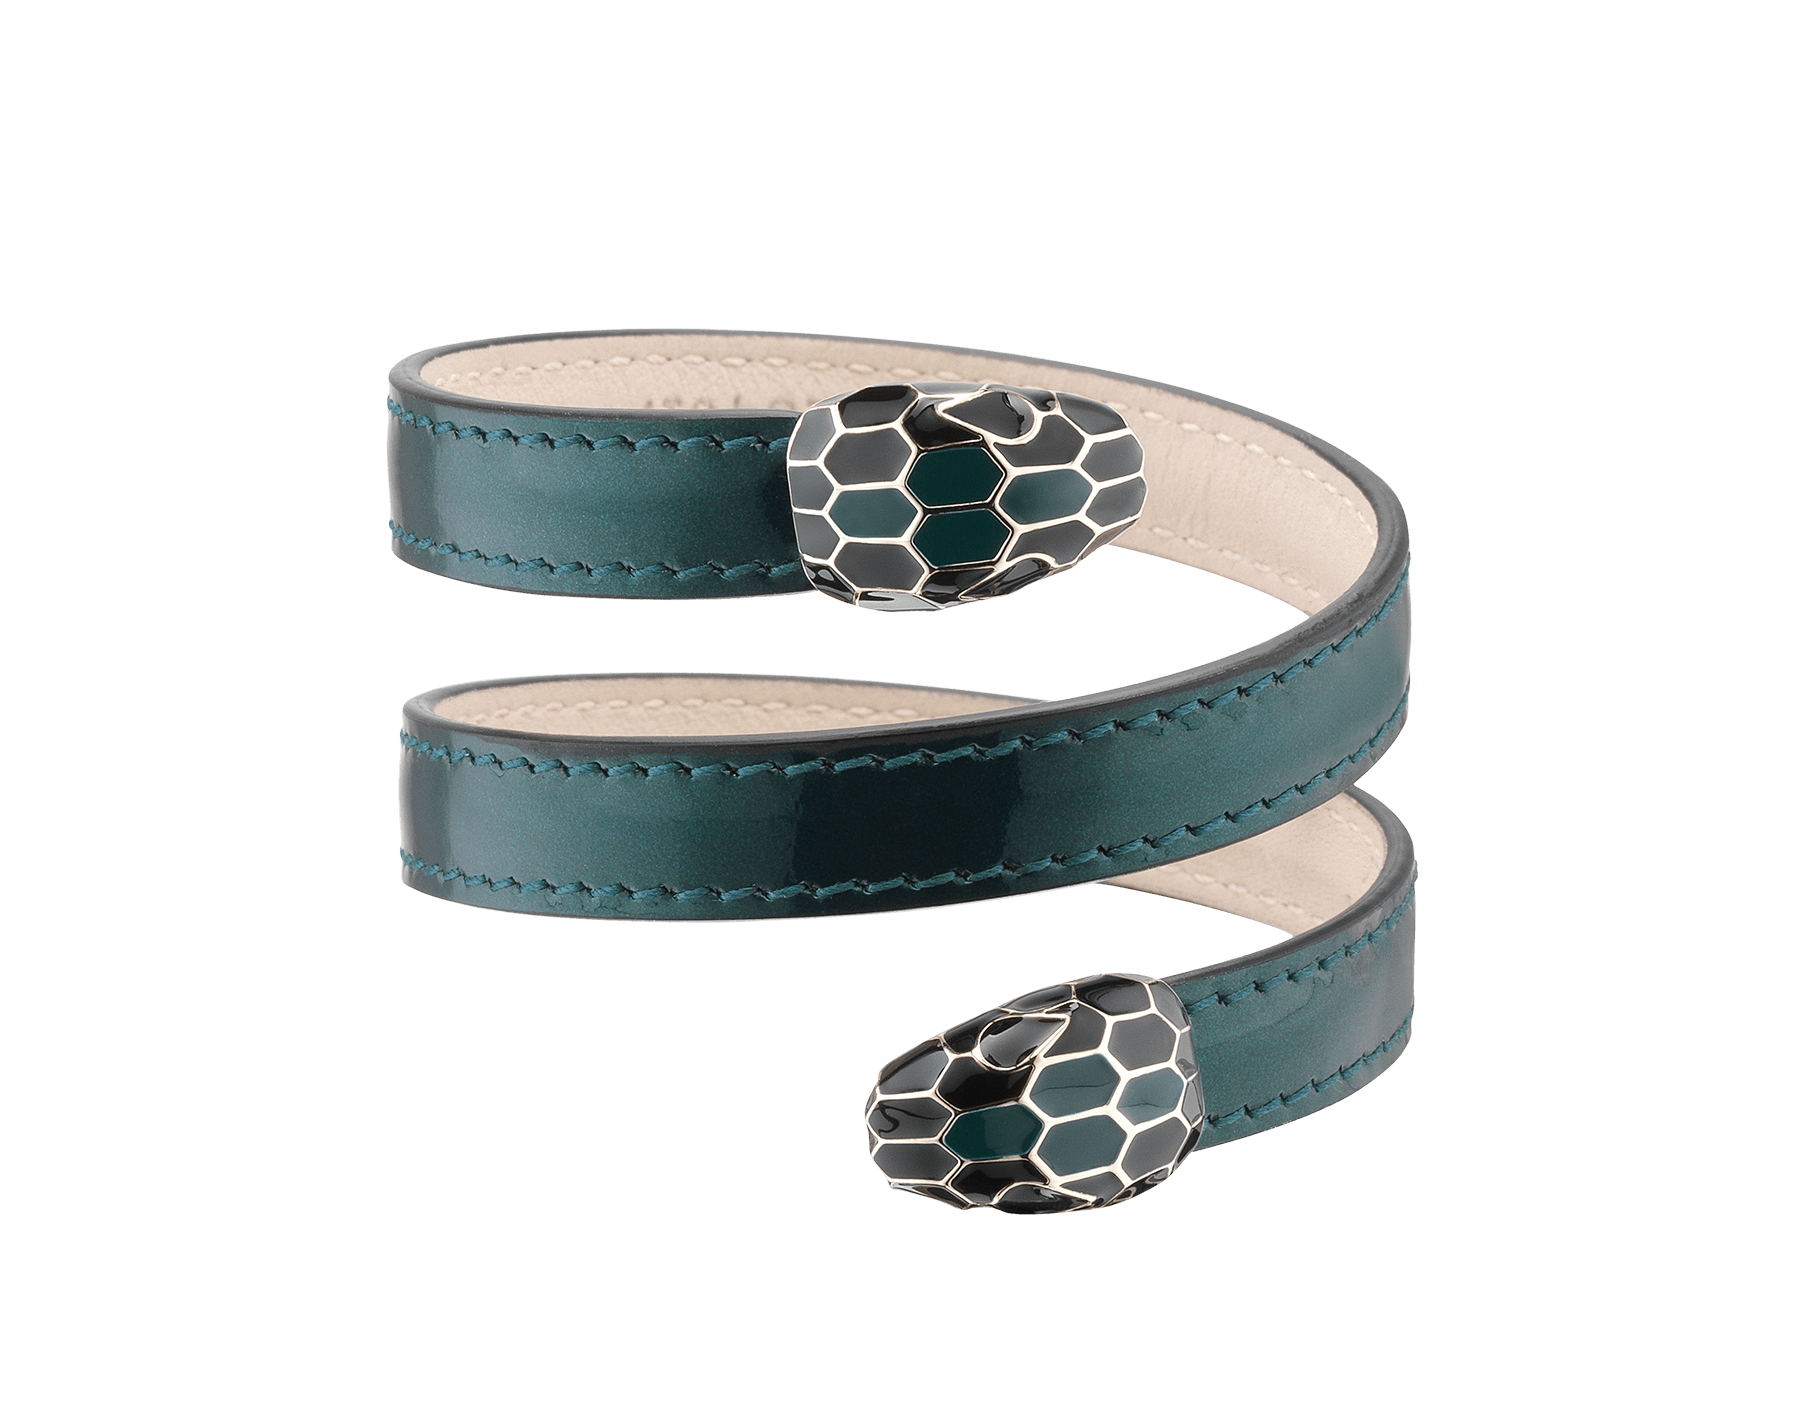 Multi-coiled rigid Cleopatra bracelet in forest emerald brushed metallic calf leather with brass light gold plated hardware. Double tempting Serpenti head finished in black and forest emerald enamel. Cleopatra-BMCL-FE image 1